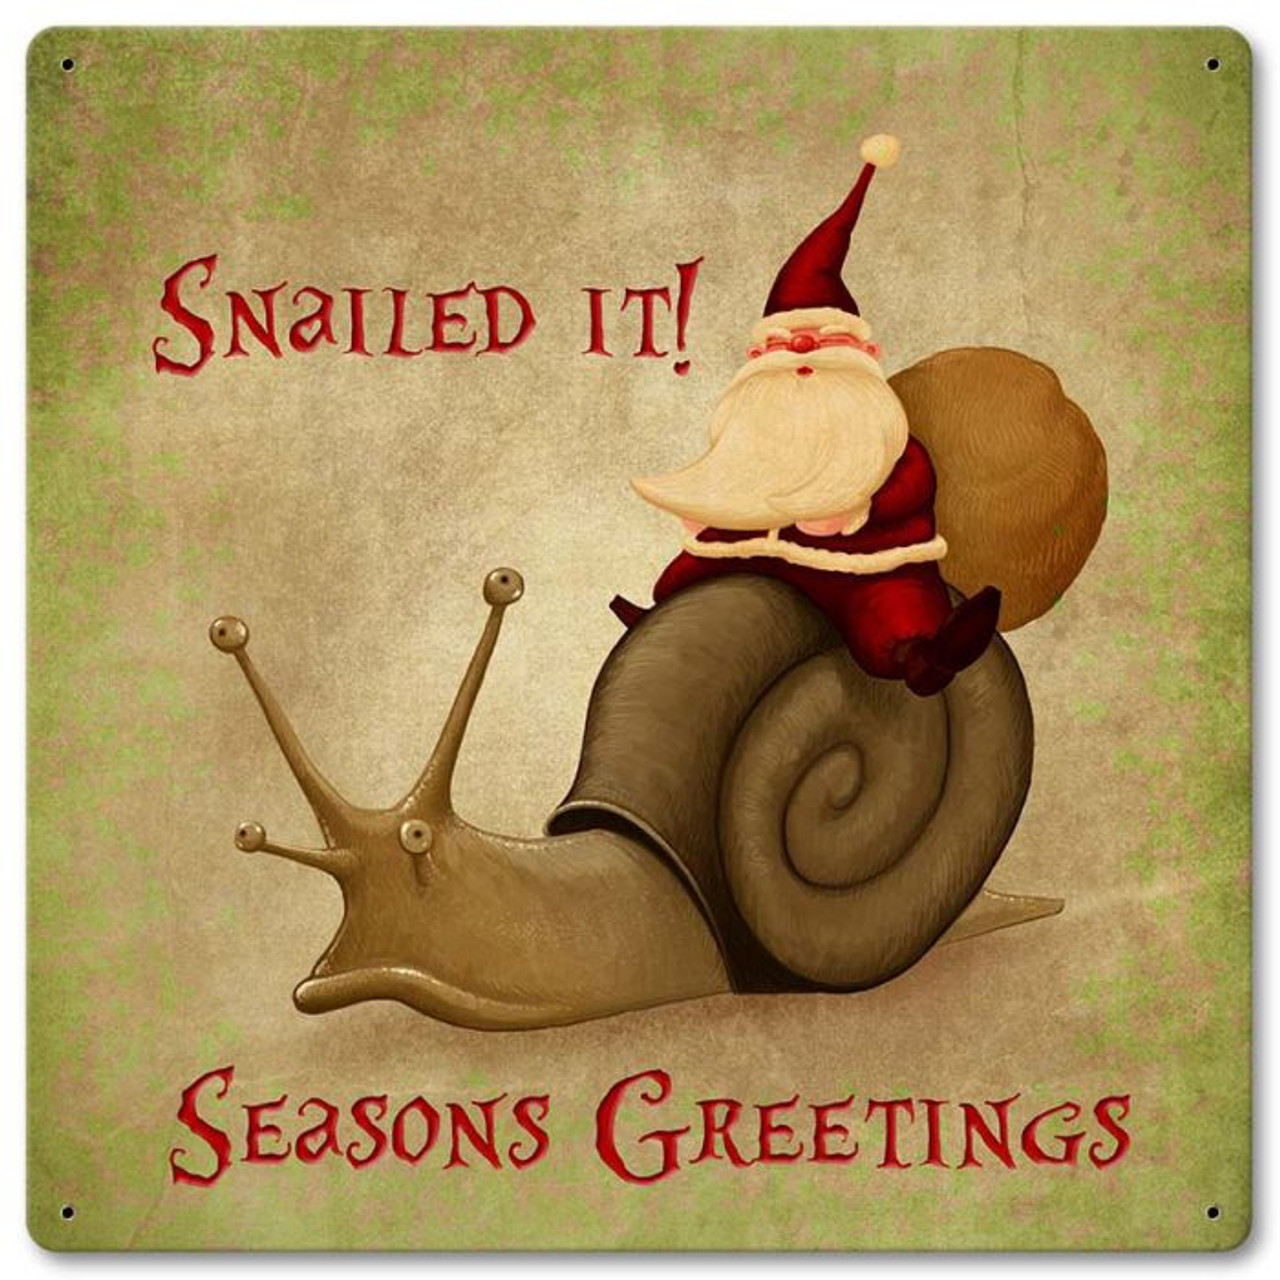 Santa Snailed It Metal Sign 12 x 12 Inches